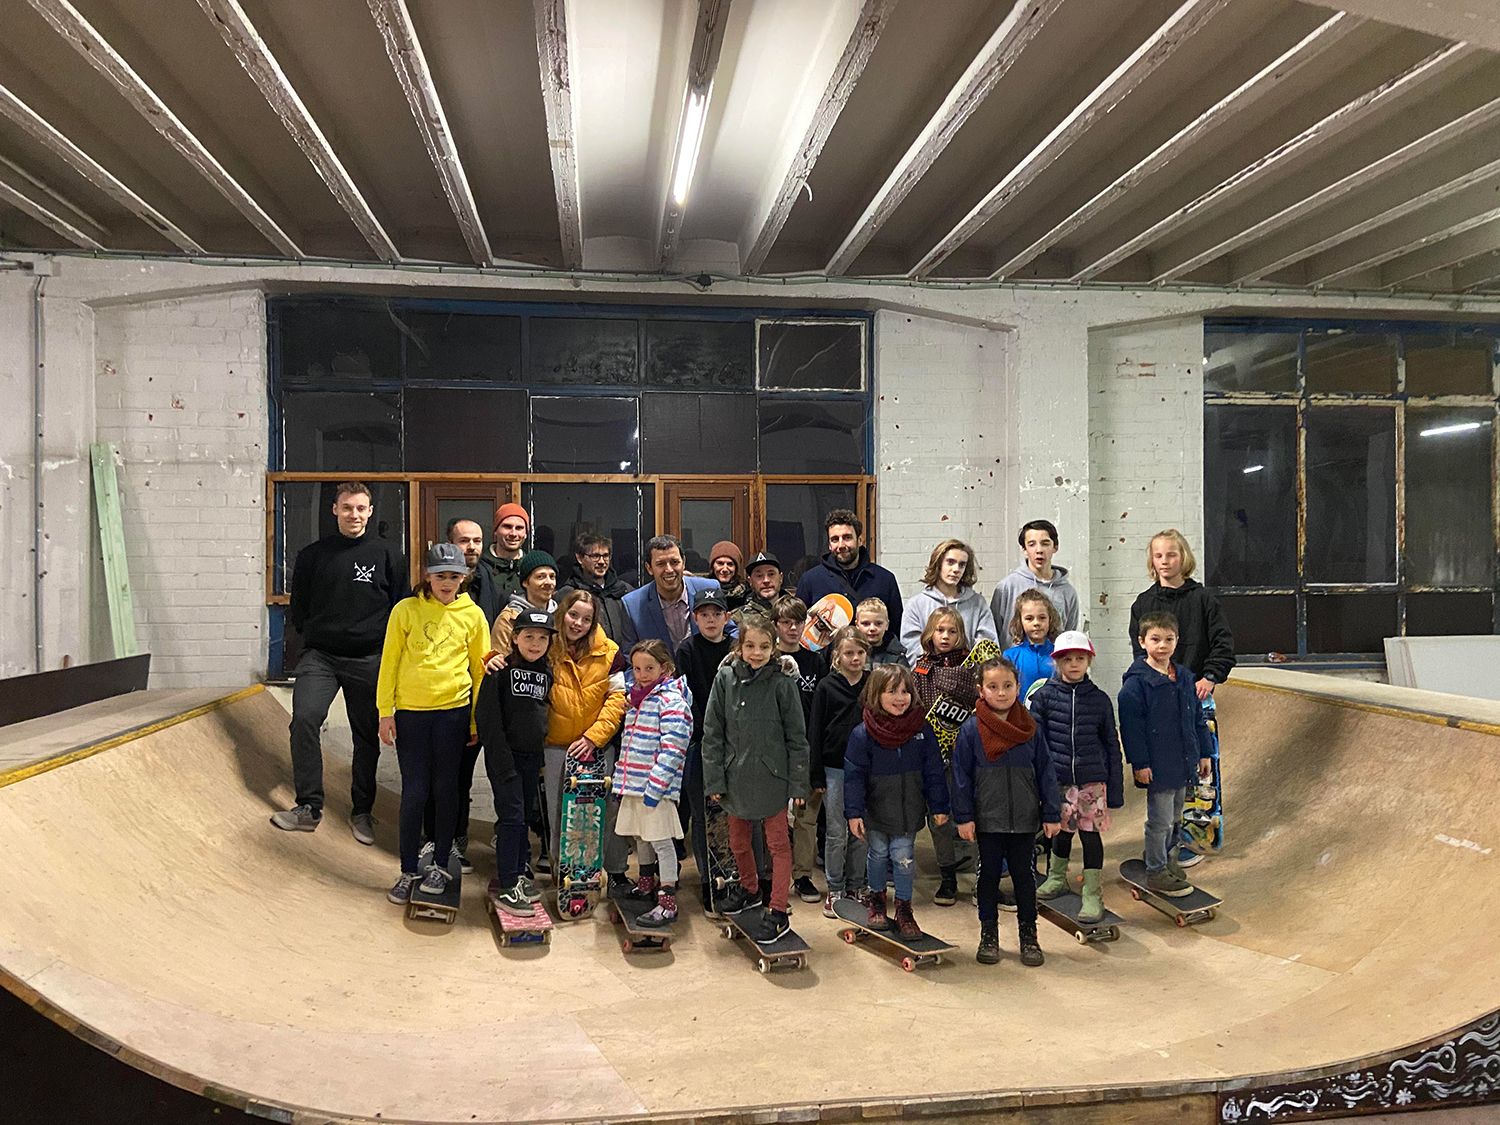 Opening indoor skatepark in Hasselt